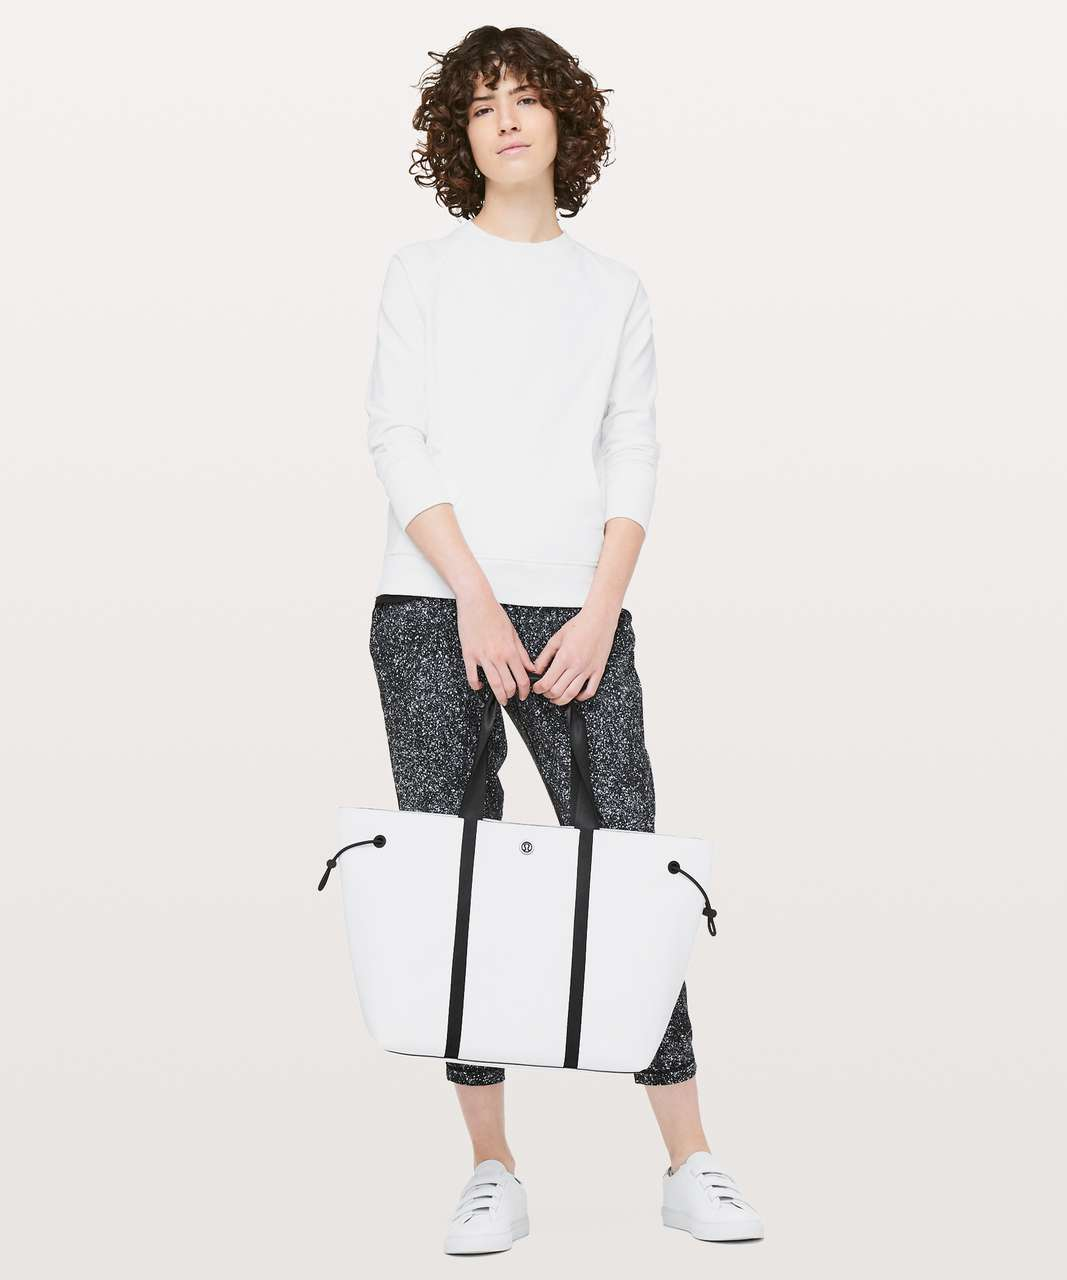 Lululemon Day Out Tote *16L - White / Black